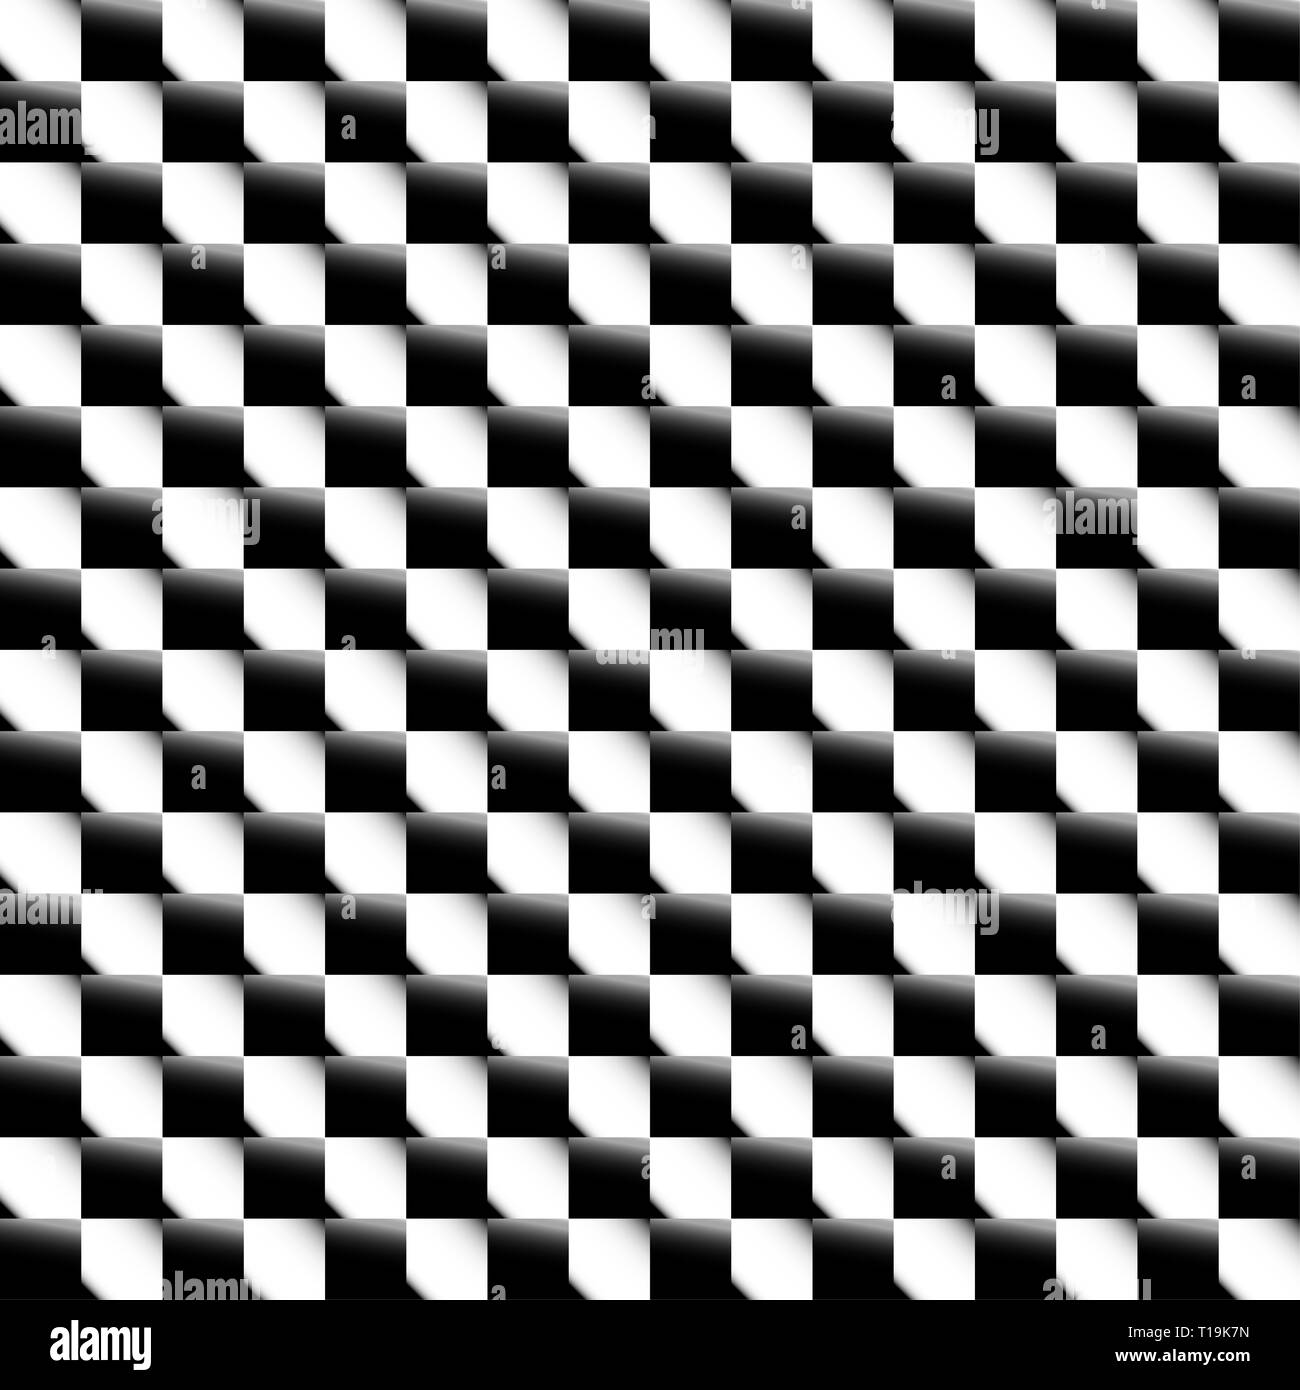 ebb37e1f3 Squares abstract geometric pattern. Grayscale, seamlessly repeatable checkered  pattern with alternating squares.